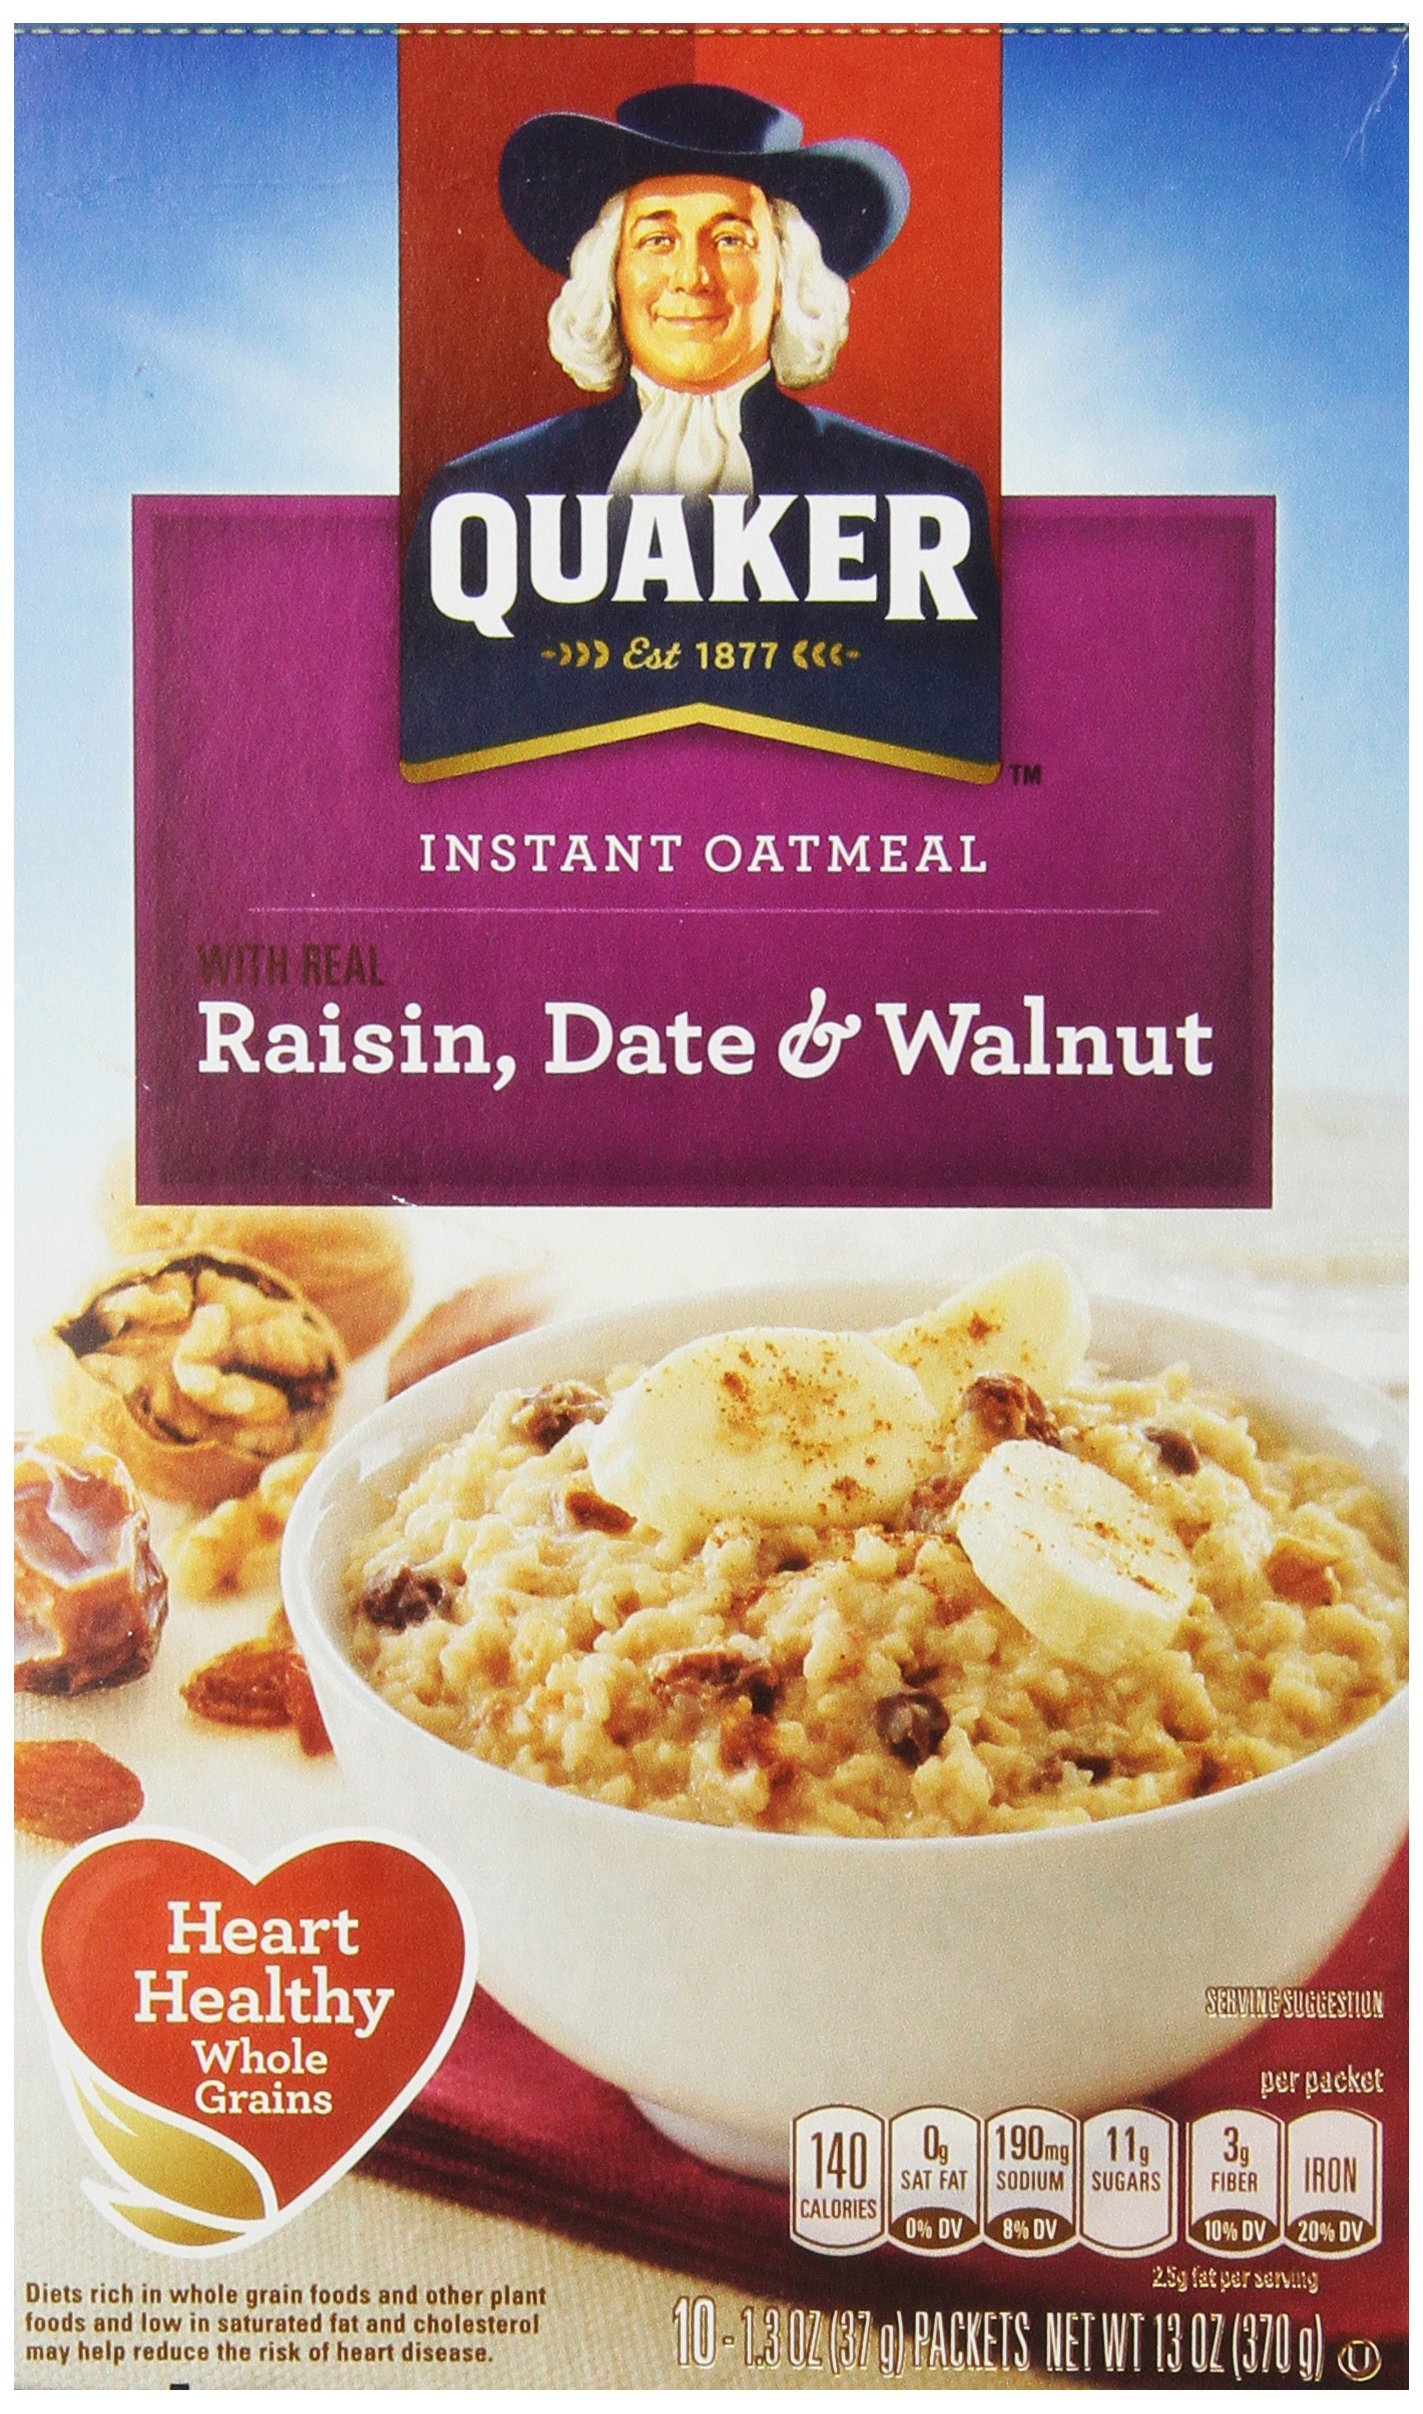 Quaker Instant Oatmeal Raisin, Date & Walnut,  1.3 Ounce Packs - 10 Count Boxes, 13 ounce (Pack of 12)